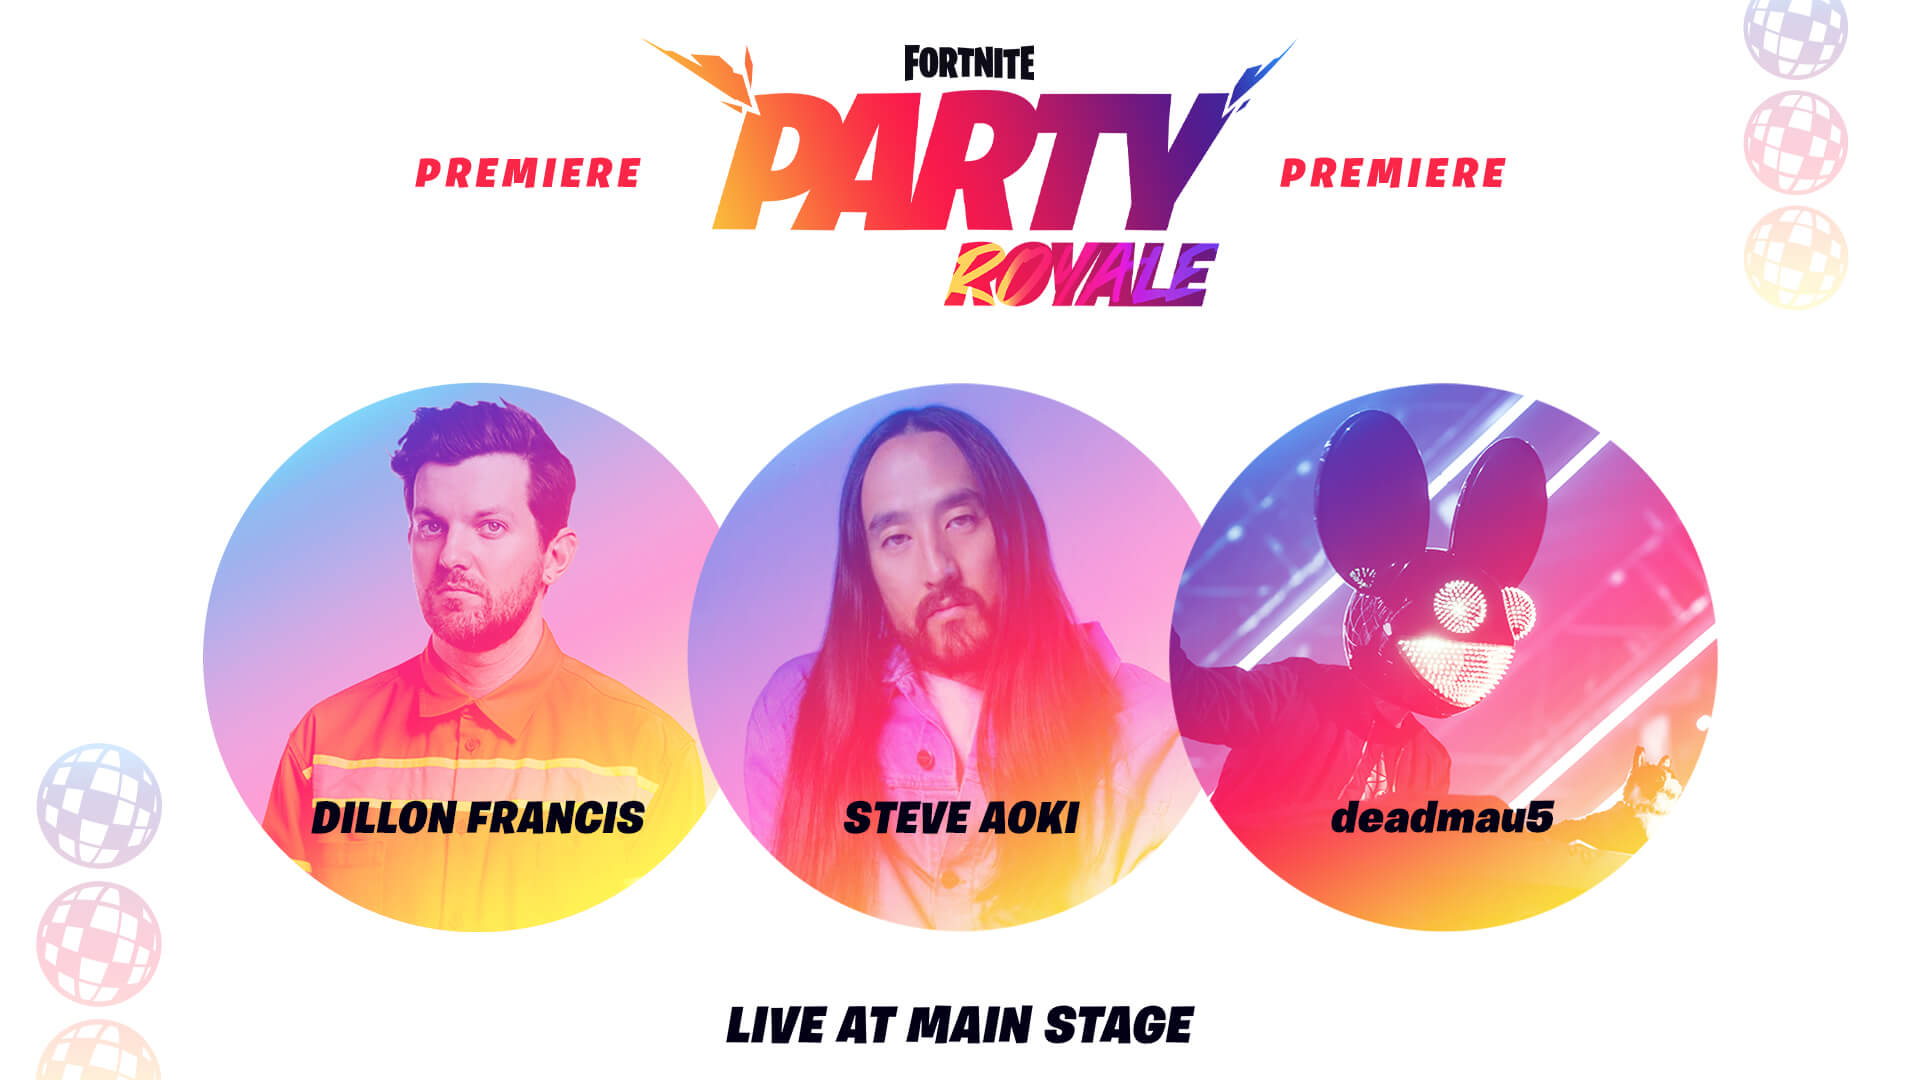 Party Royale: Fortnite's Concert with Dillon Francis, Steve Aoki and Deadmau5